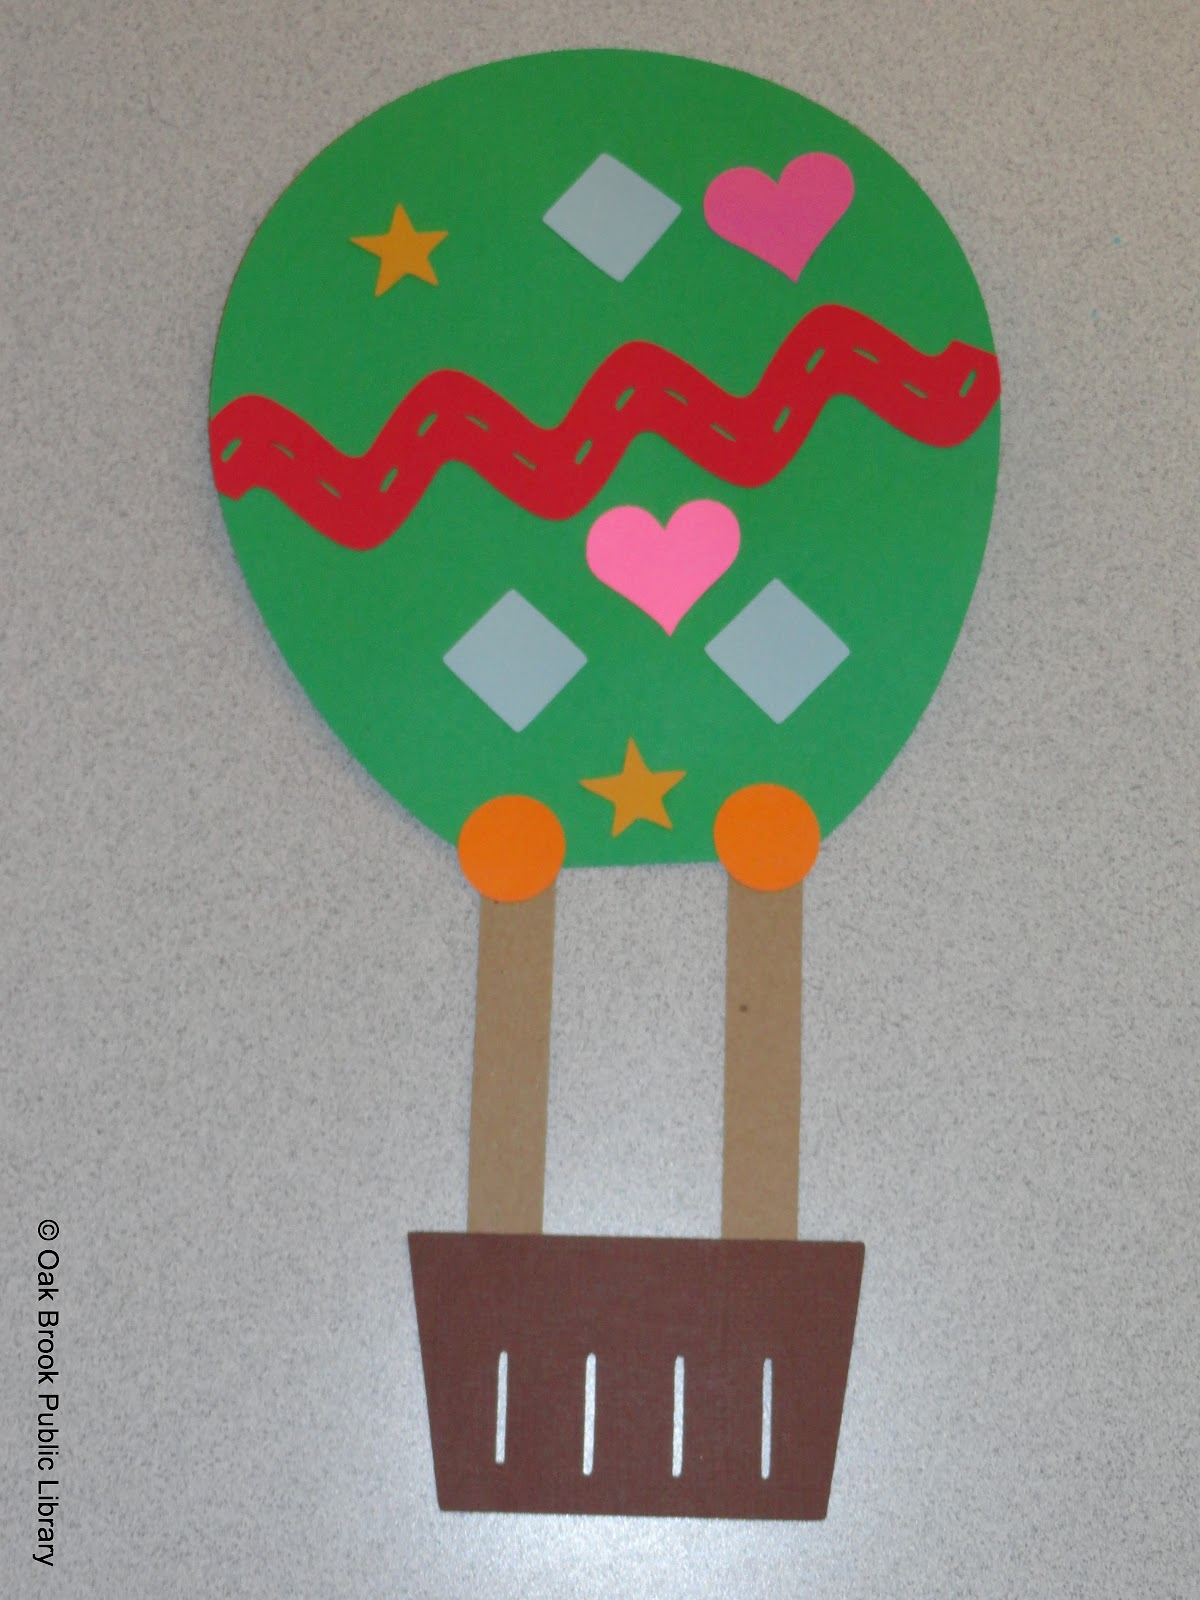 Obpl Youth Services Blog Crafting Like No Tomorrow Upcoming Crafts